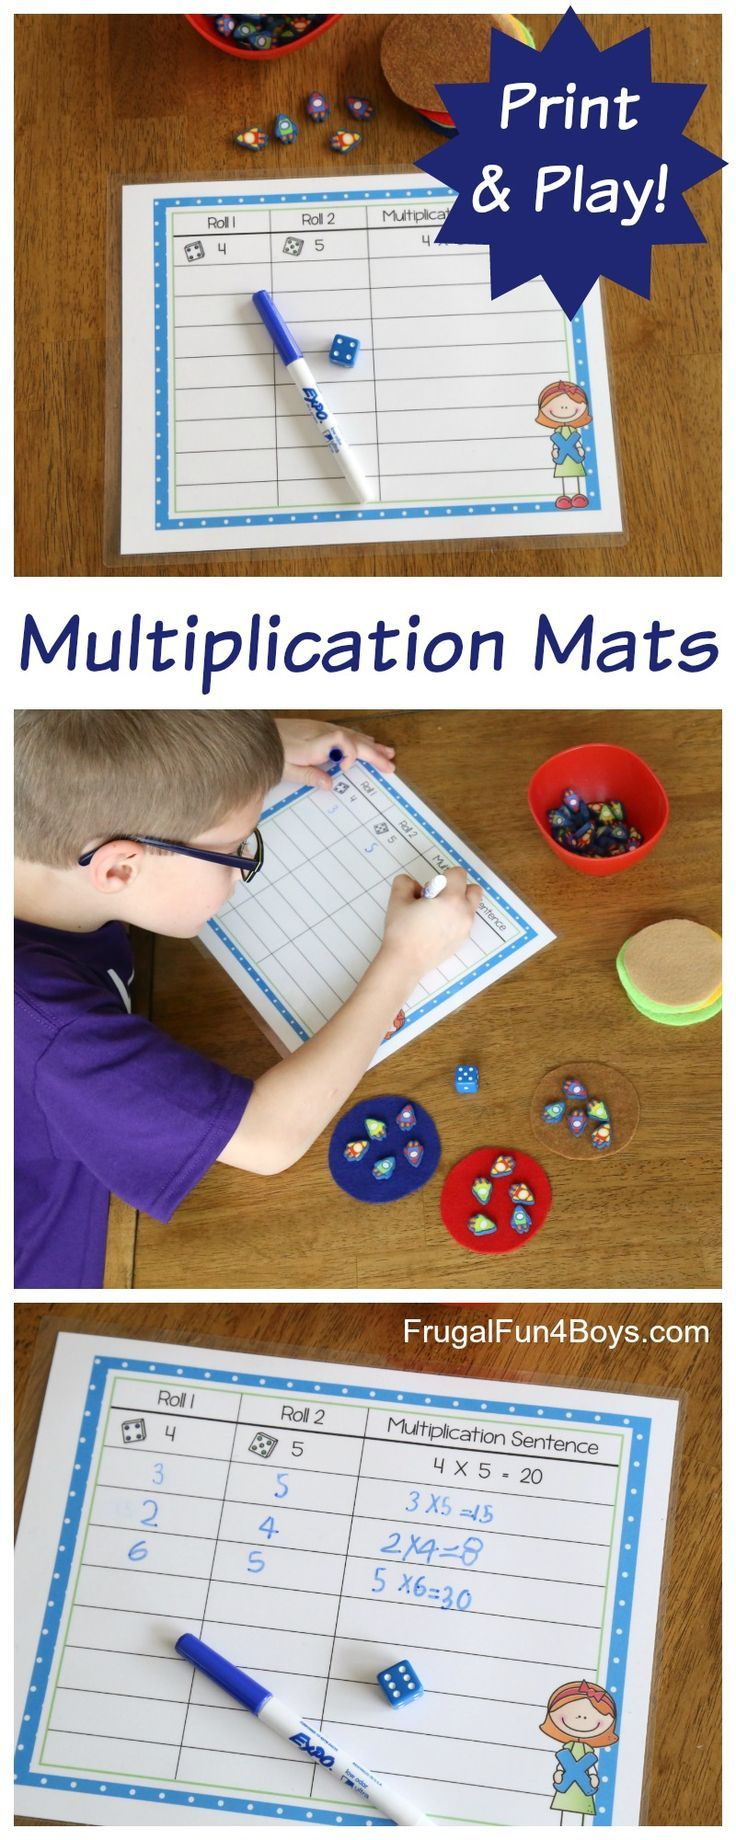 Hands-On Multiplication - Printable Mats.  Roll the dice to see how many planets to put out. Roll again to see how many rockets to put on each planet. Clever way to teach multiplication!